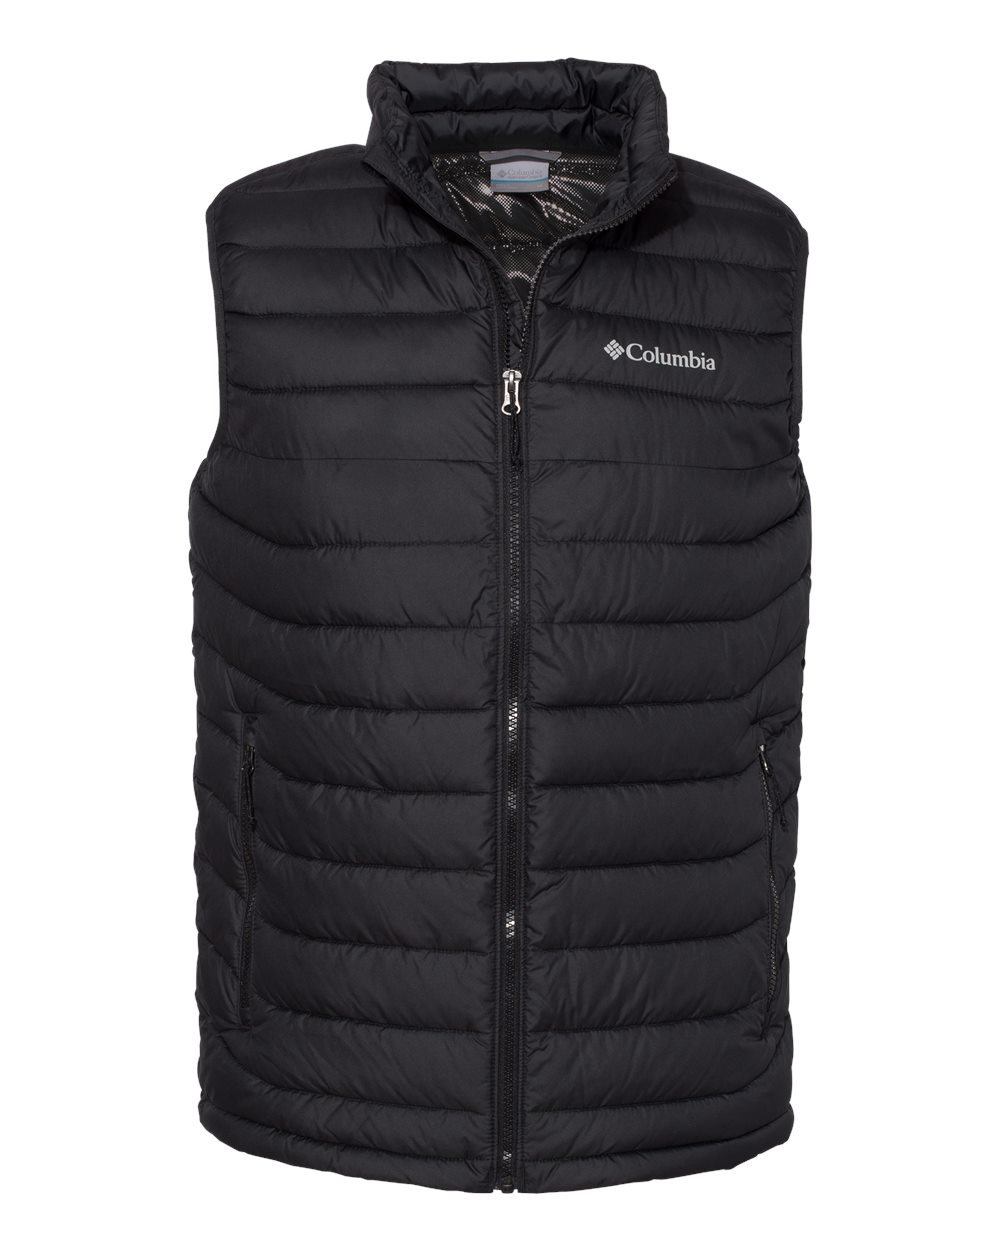 Columbia 174803 - Powder Lite Vest